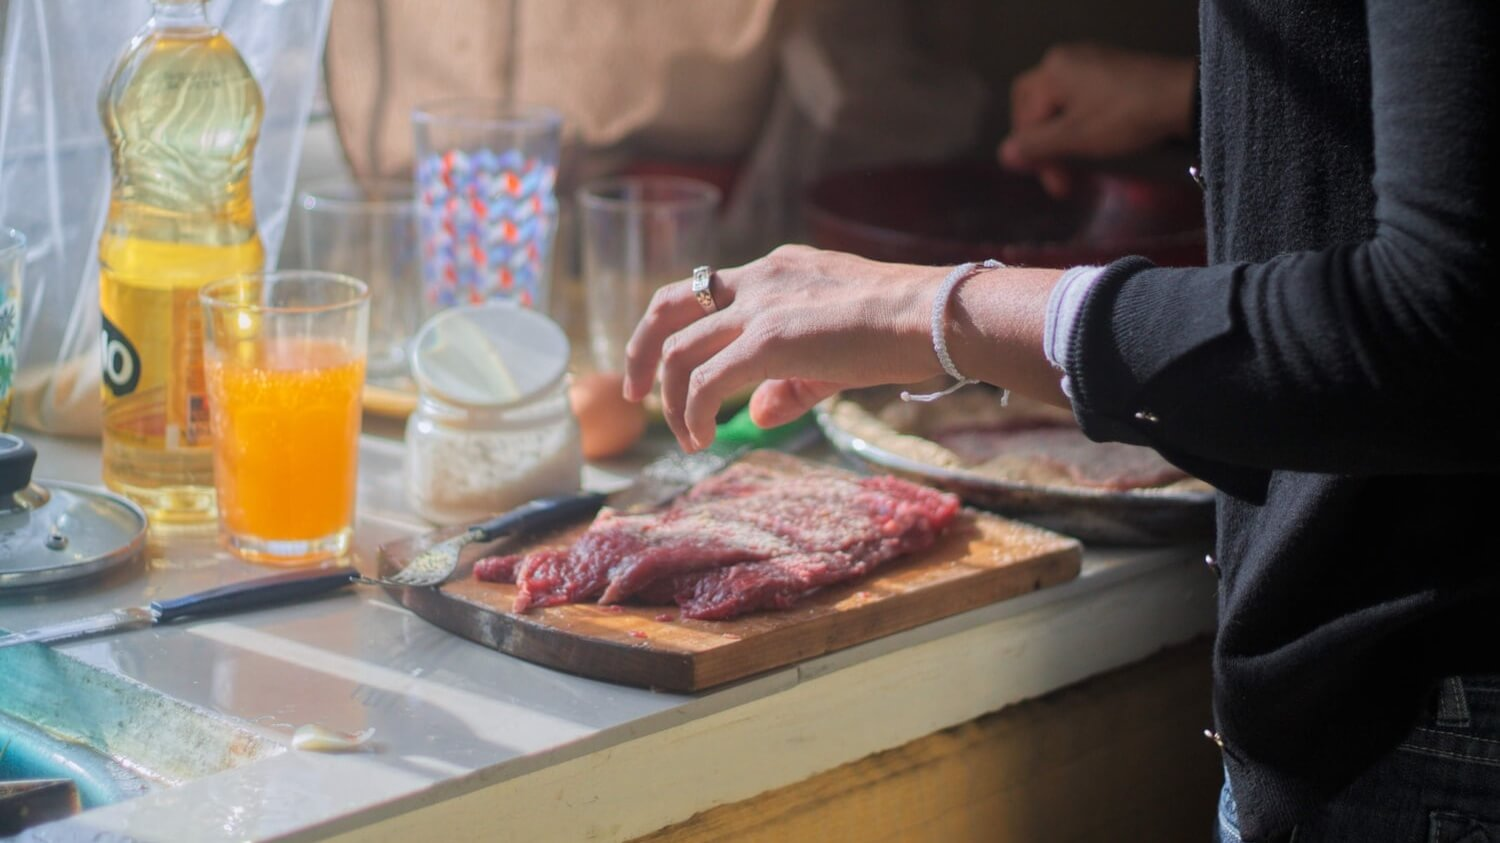 Europe's Meat Consumption Has Dropped 20% in 3 Months